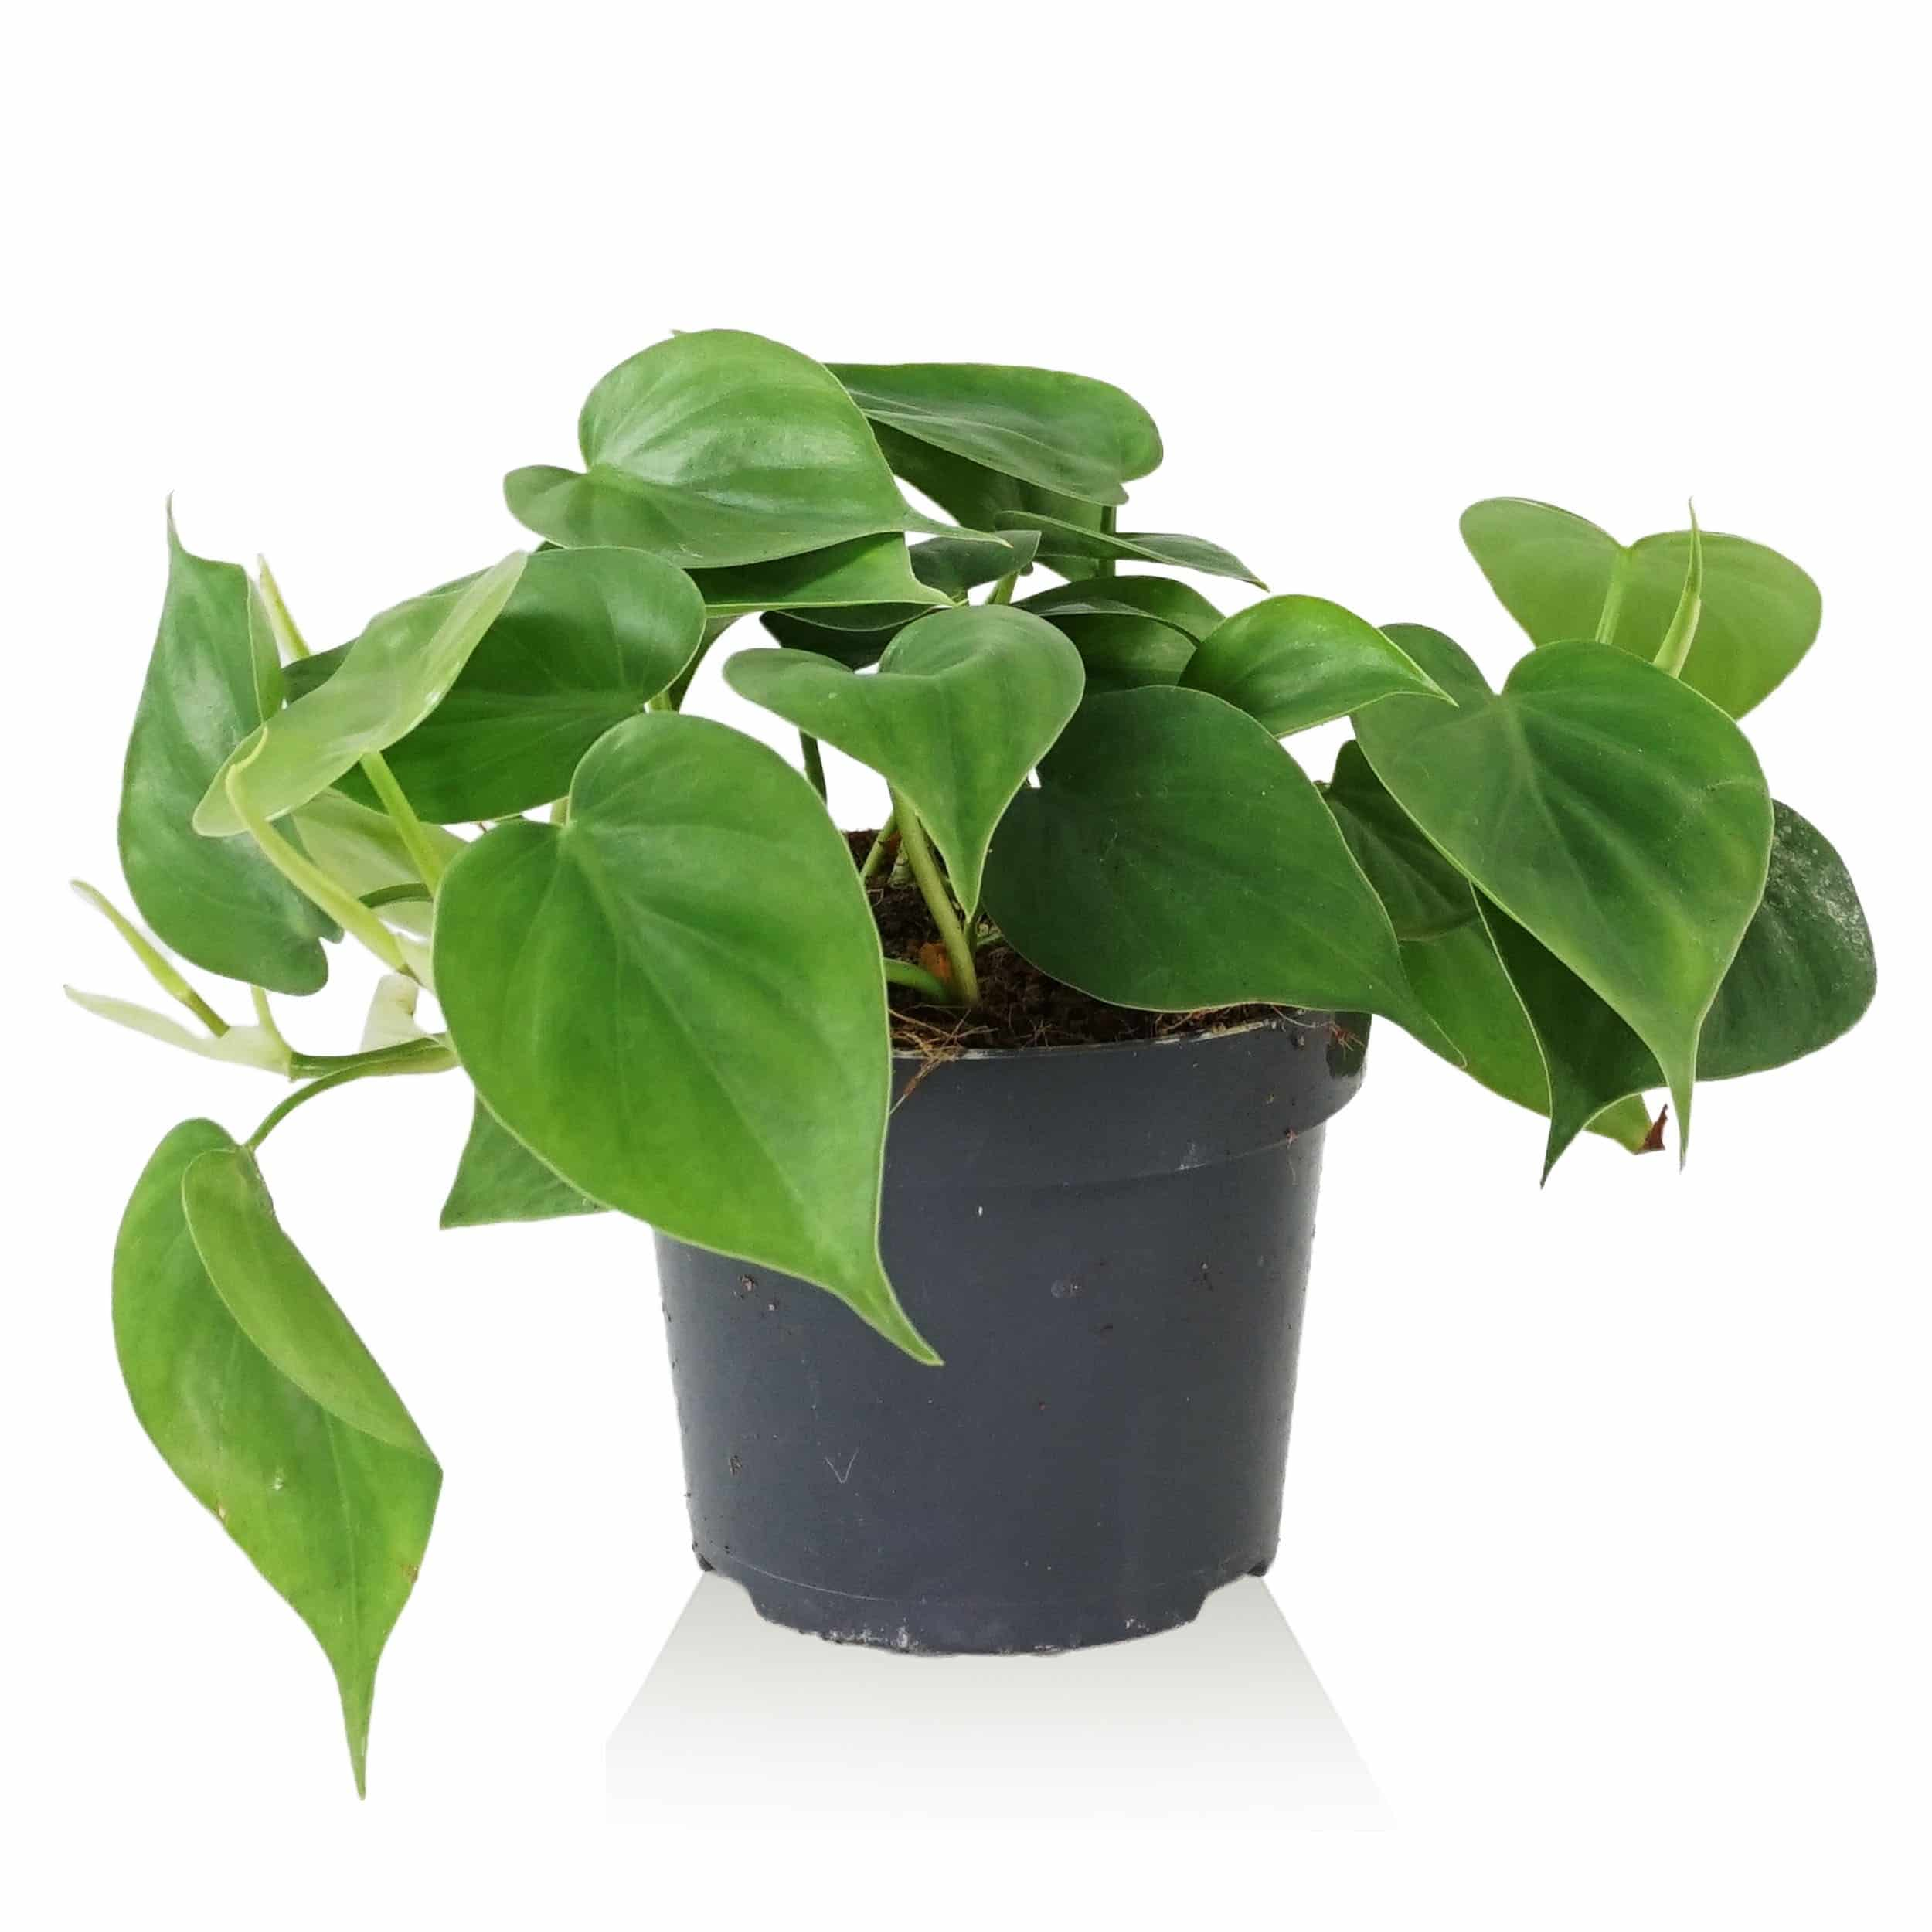 Philodendron scandens - Kletterphilodendron